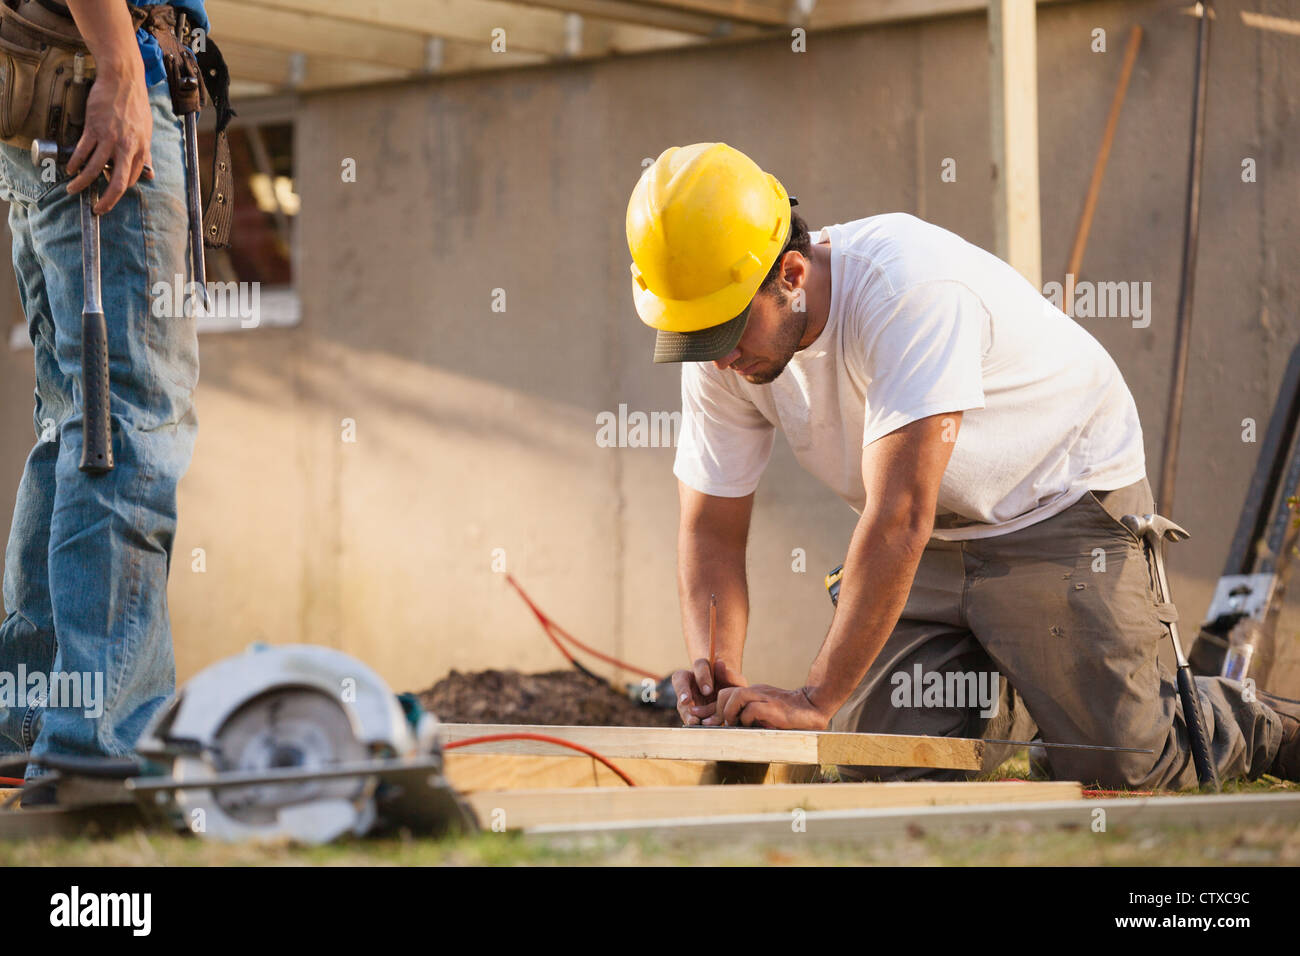 Carpenter measuring deck joist for cutting - Stock Image